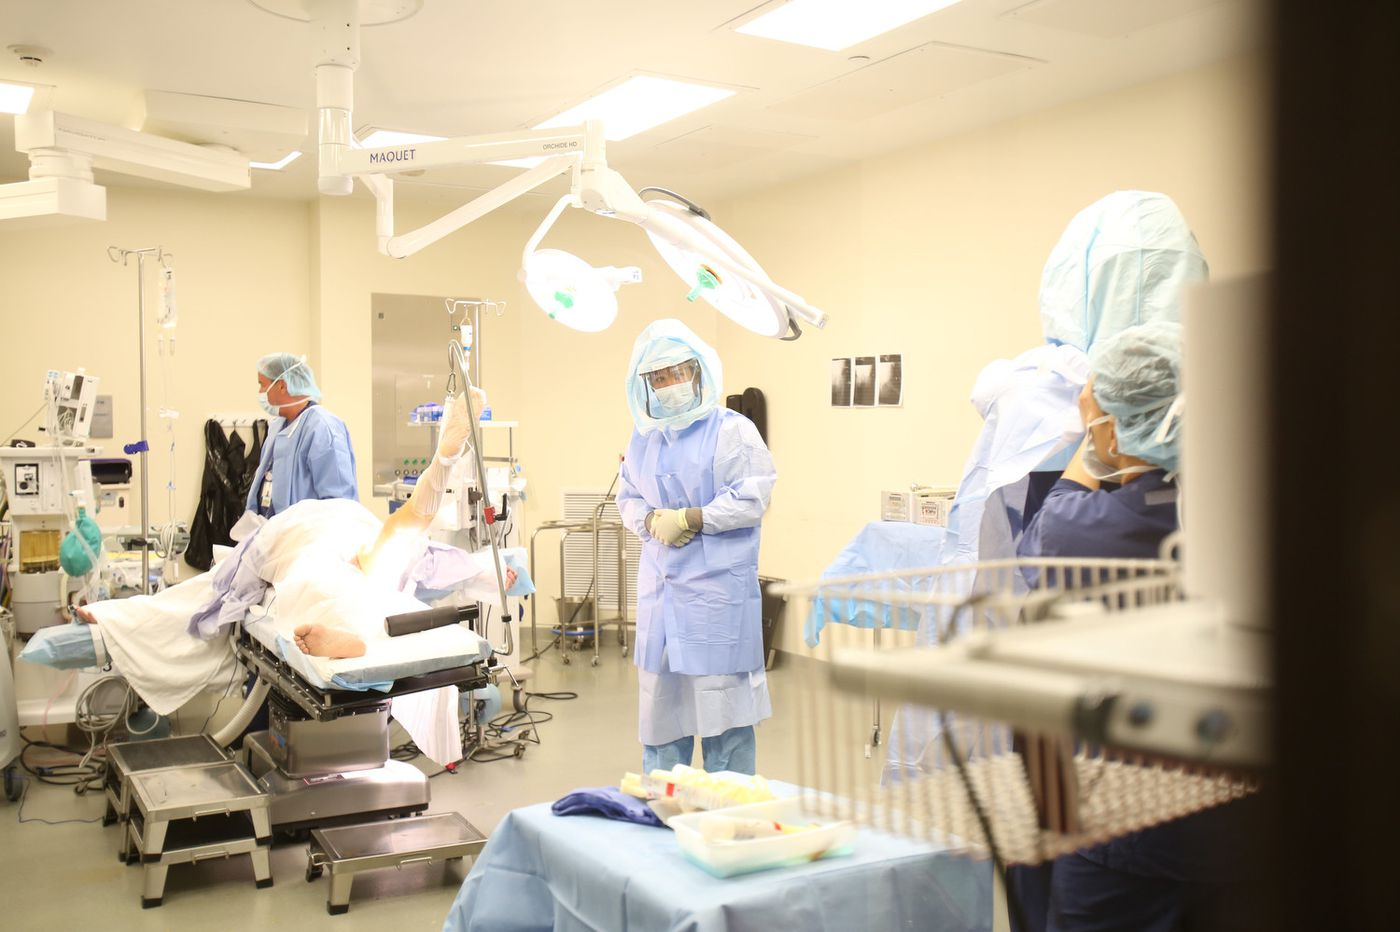 Inside the OR: Hip replacement surgery